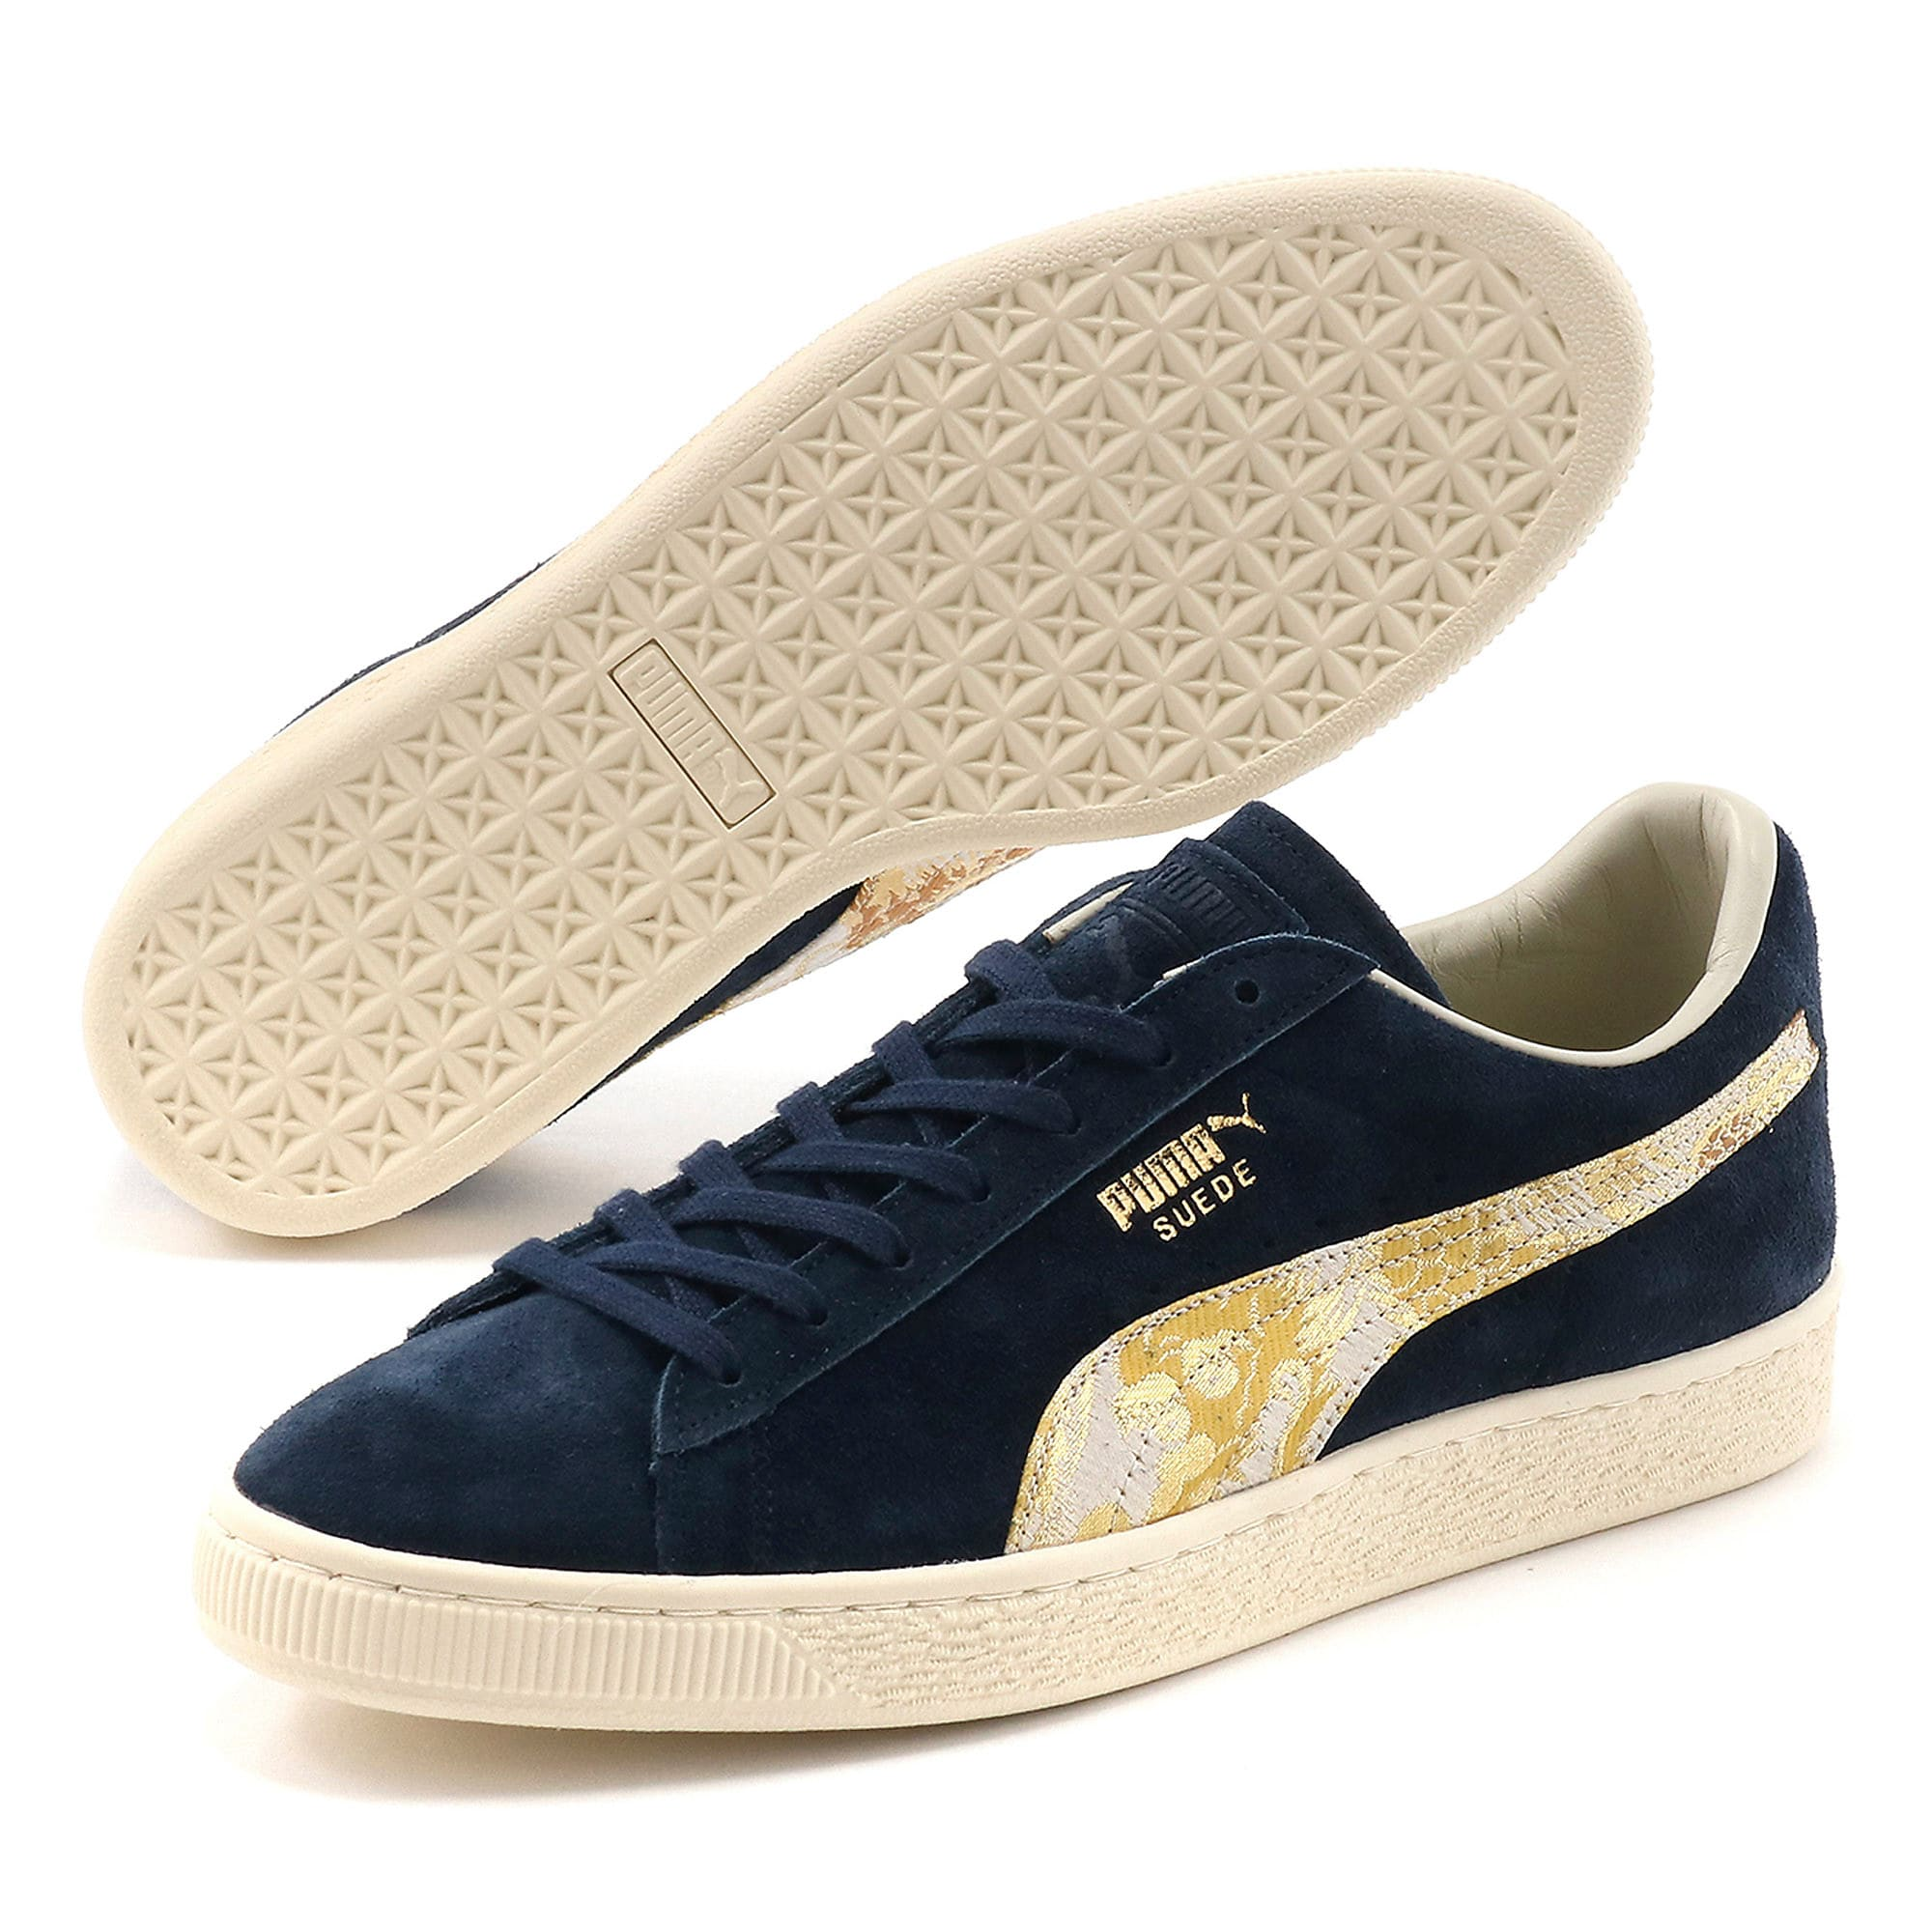 Thumbnail 2 of スウェード MIJ, Peacoat-Puma Team Gold, medium-JPN